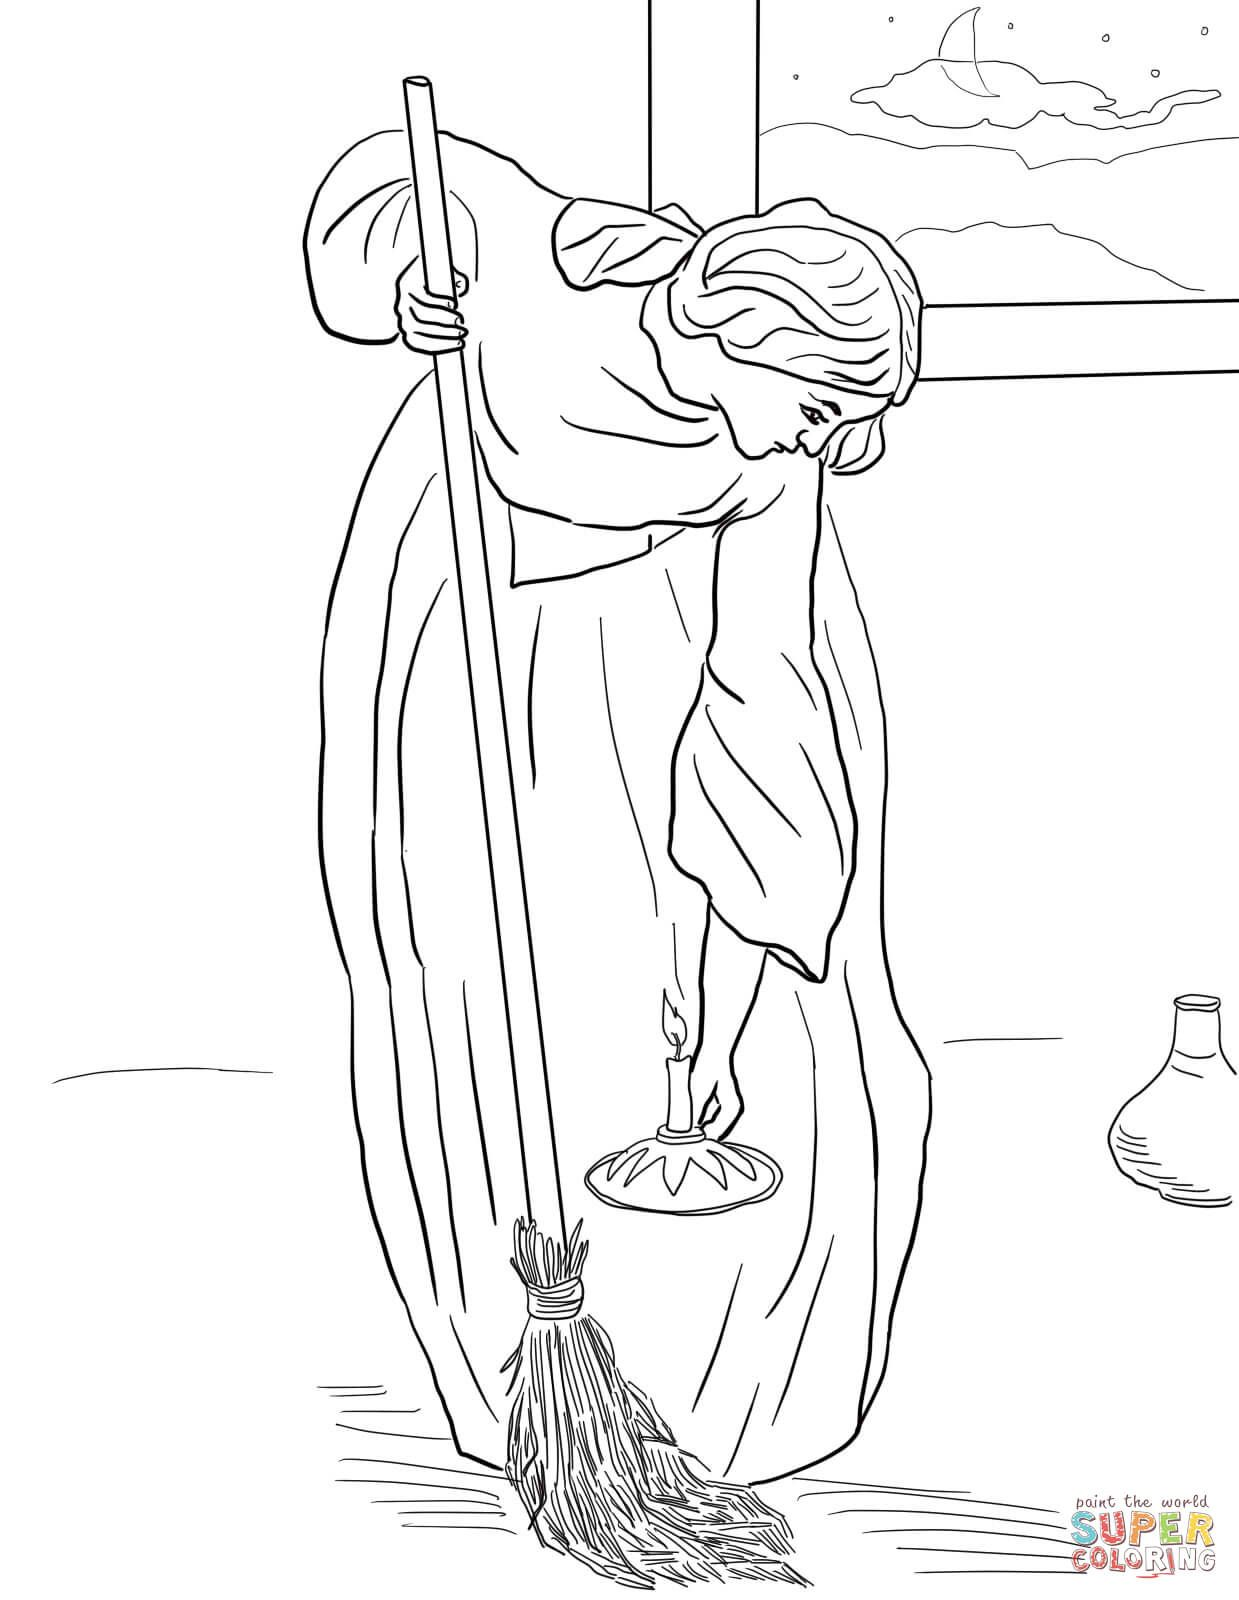 1239x1600 Lost Coin Parable Coloring Page Lesson Parables